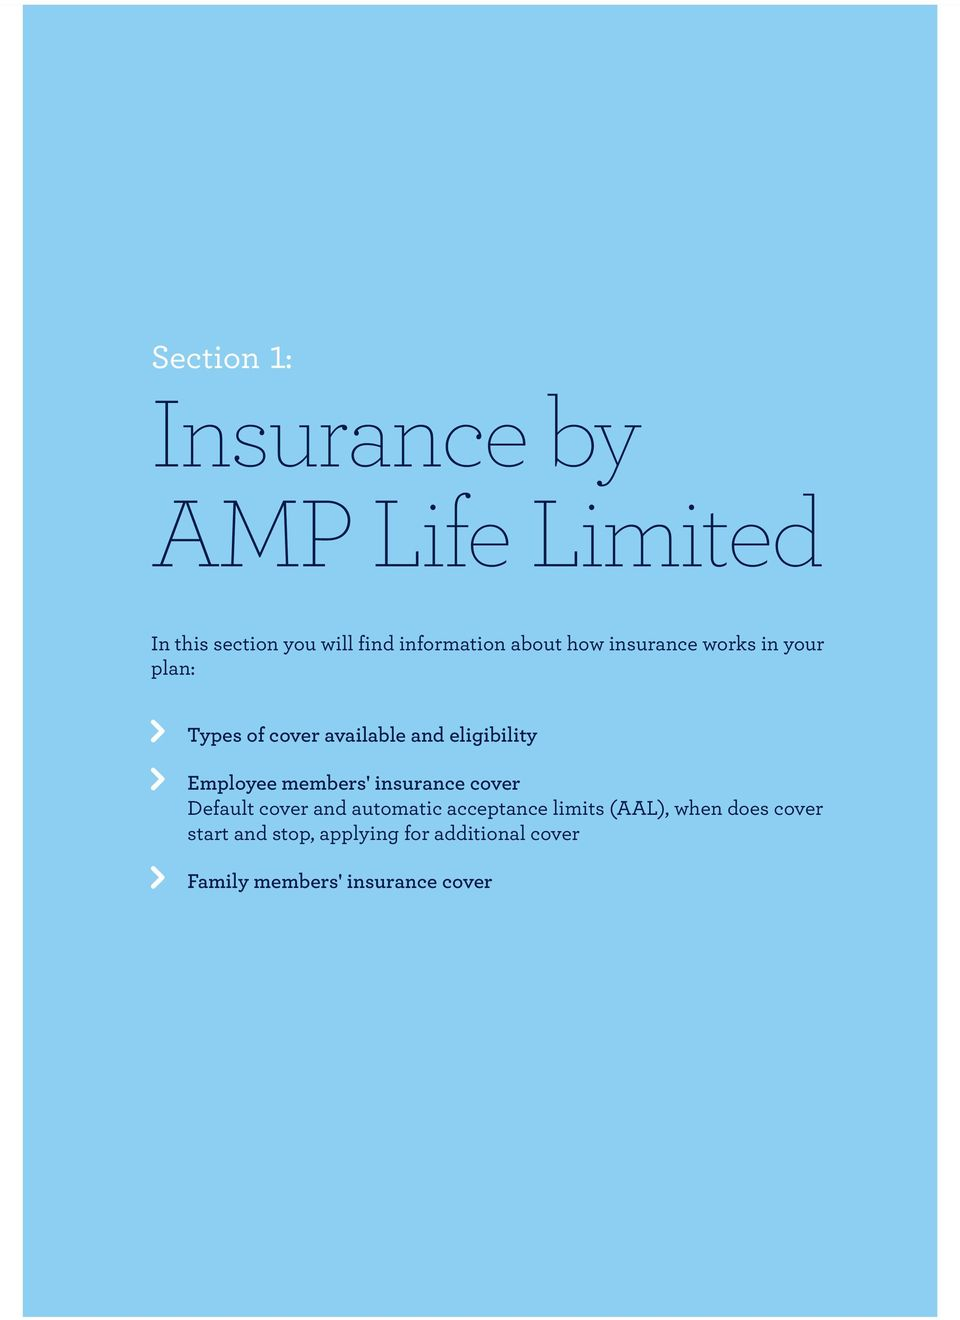 Employee members' insurance cover Default cover and automatic acceptance limits (AAL),